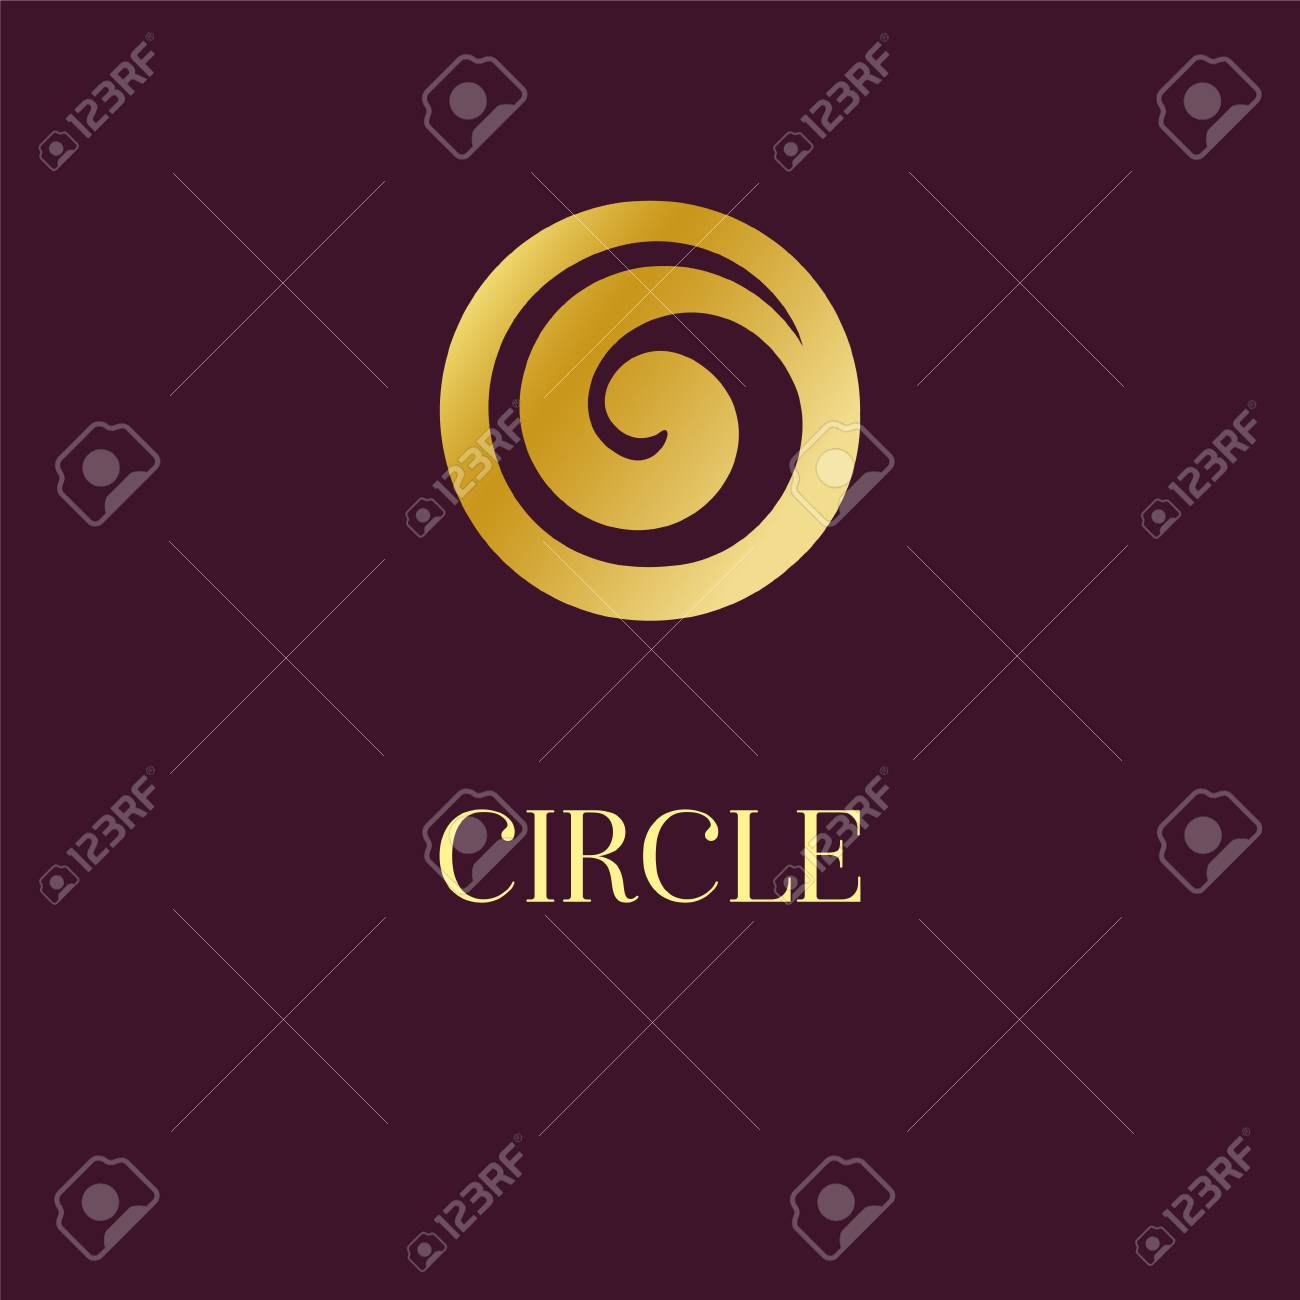 Abstract icon design elegant golden circle spiral symbol template artwork exhibitions auctions corporate products yoga studio boutique spa center jewelry hotel business cards universal premium vector sign reheart Choice Image